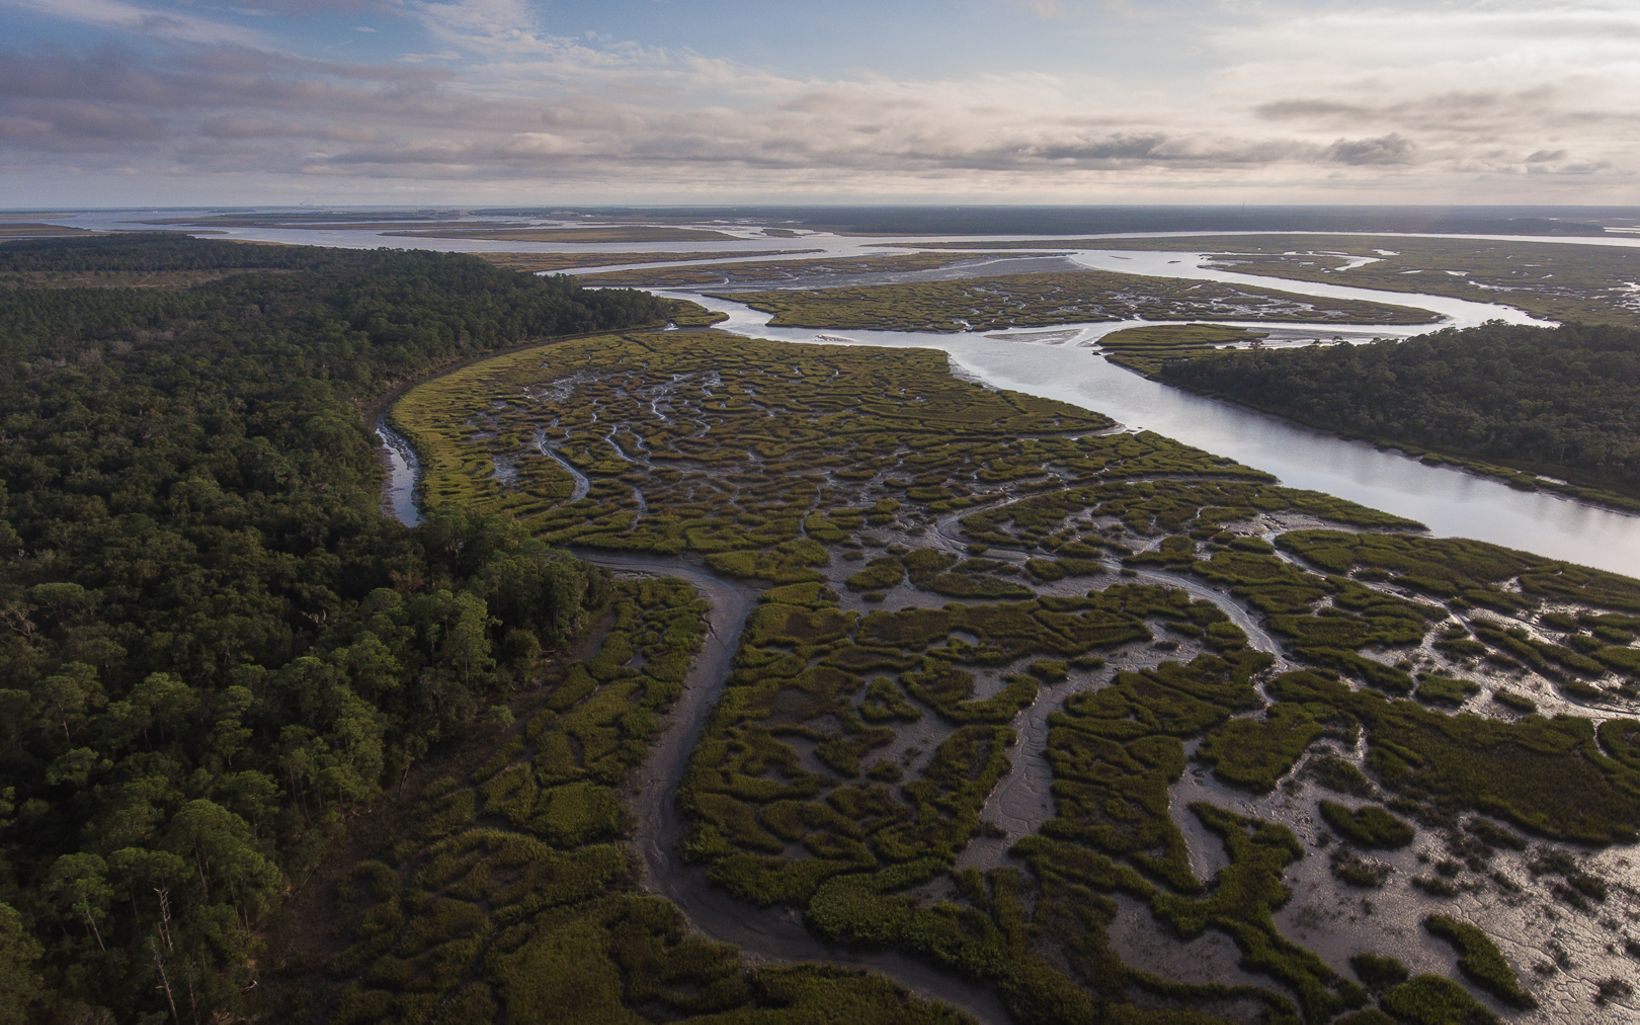 Aerial view of a river and marsh,